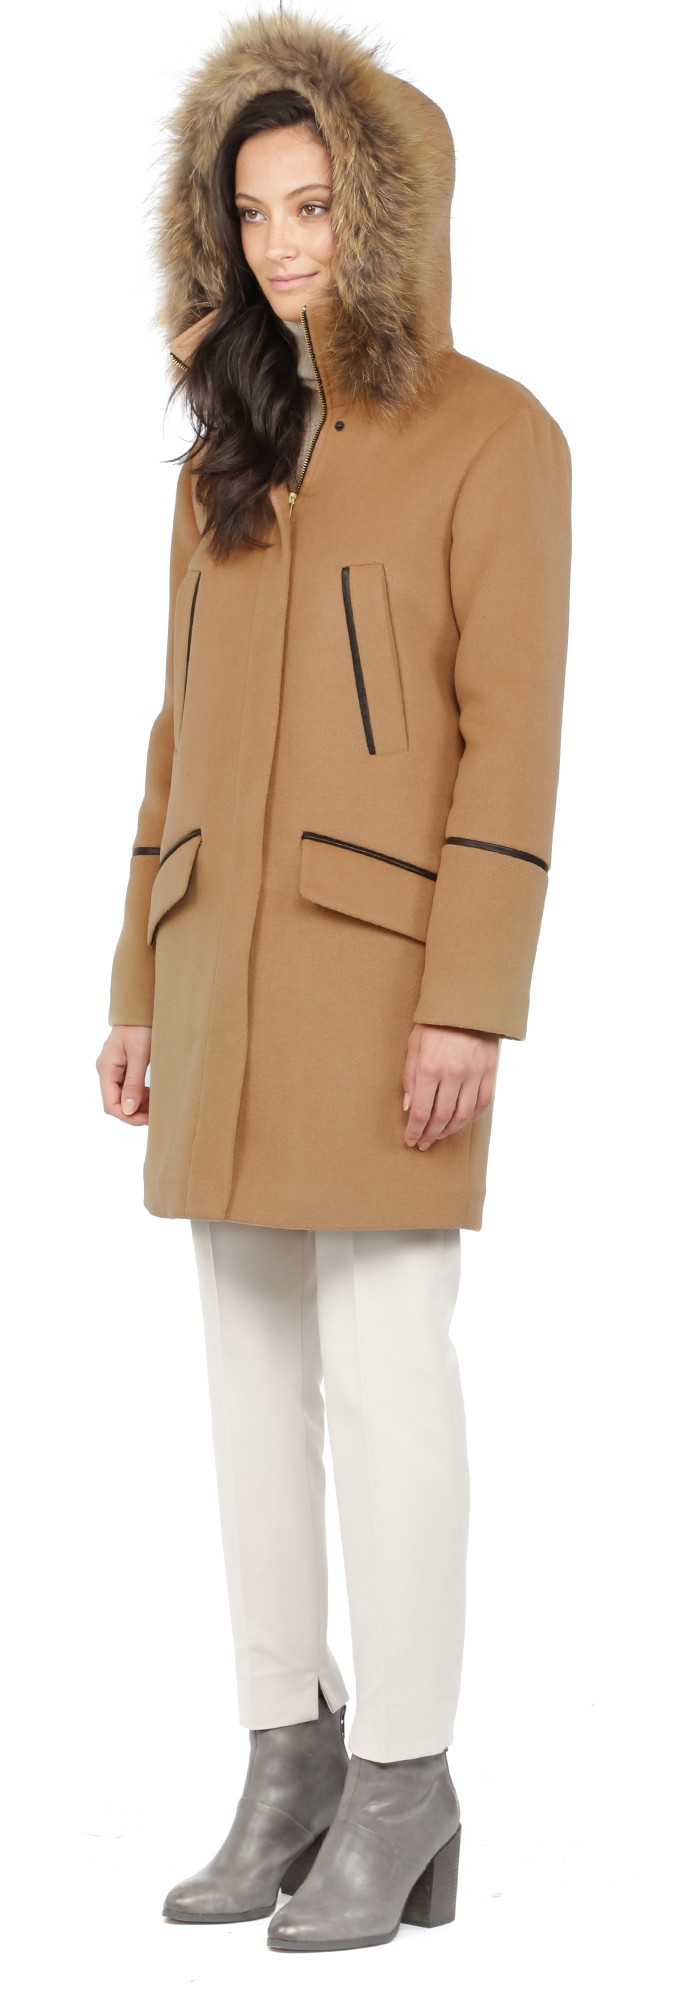 Lyst Soia Amp Kyo Ariane Camel Winter Wool Parka With Fur